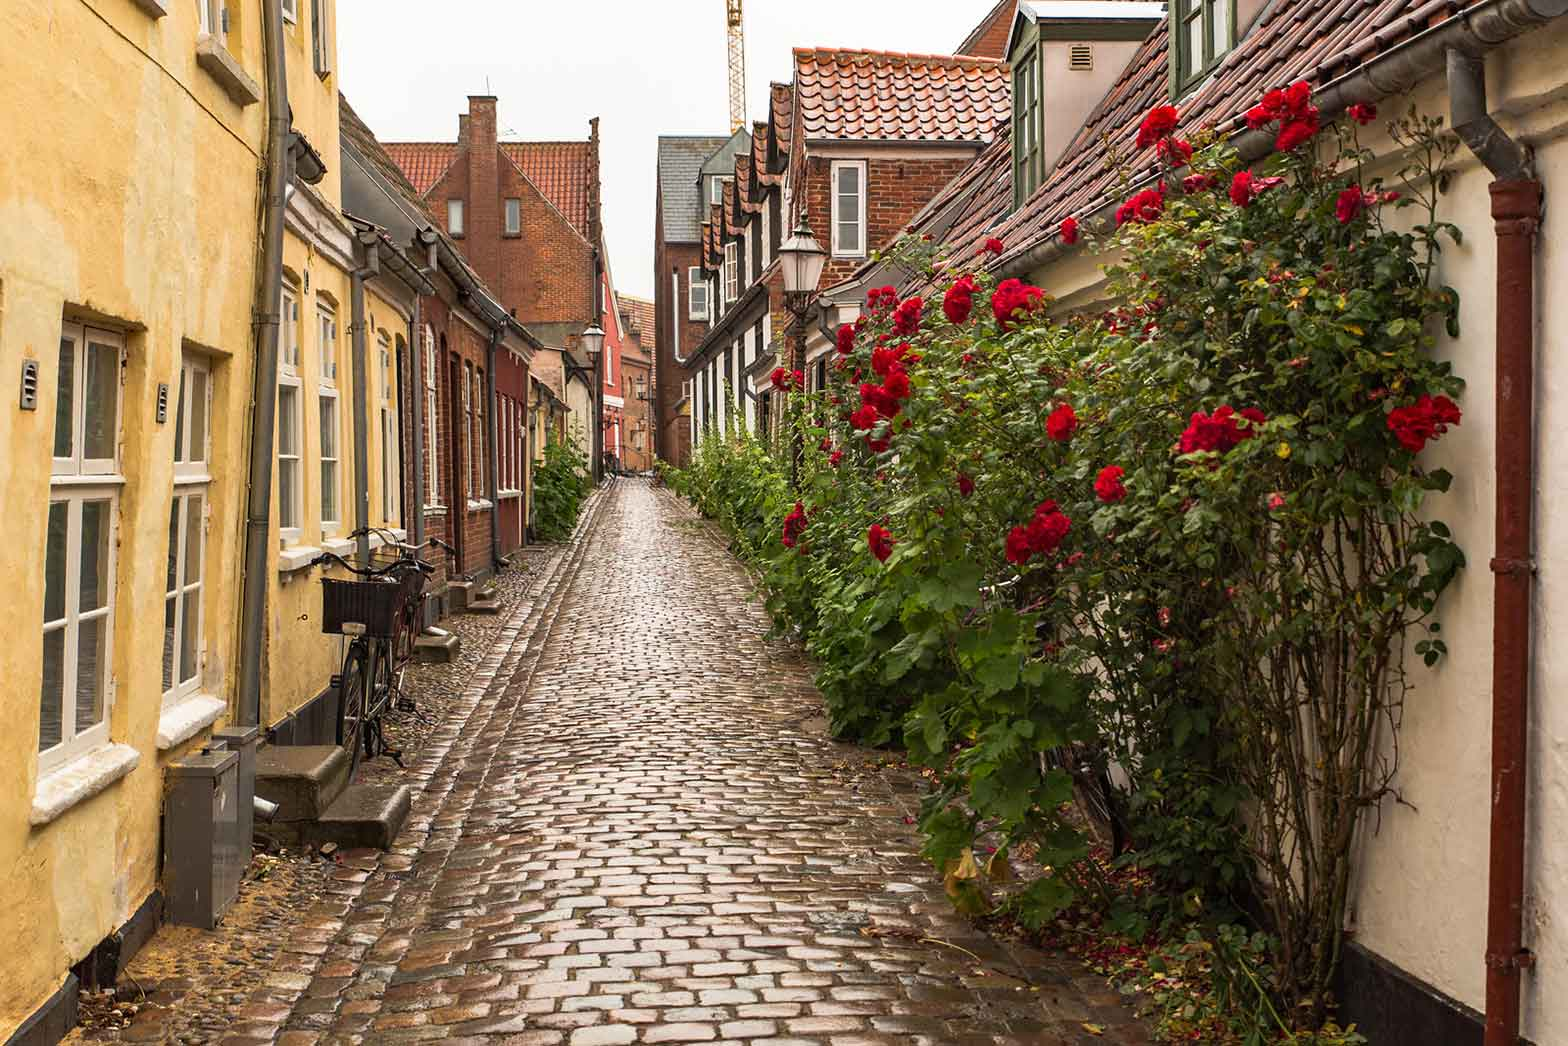 A narrow cobblestone street in Bruges, Belgium